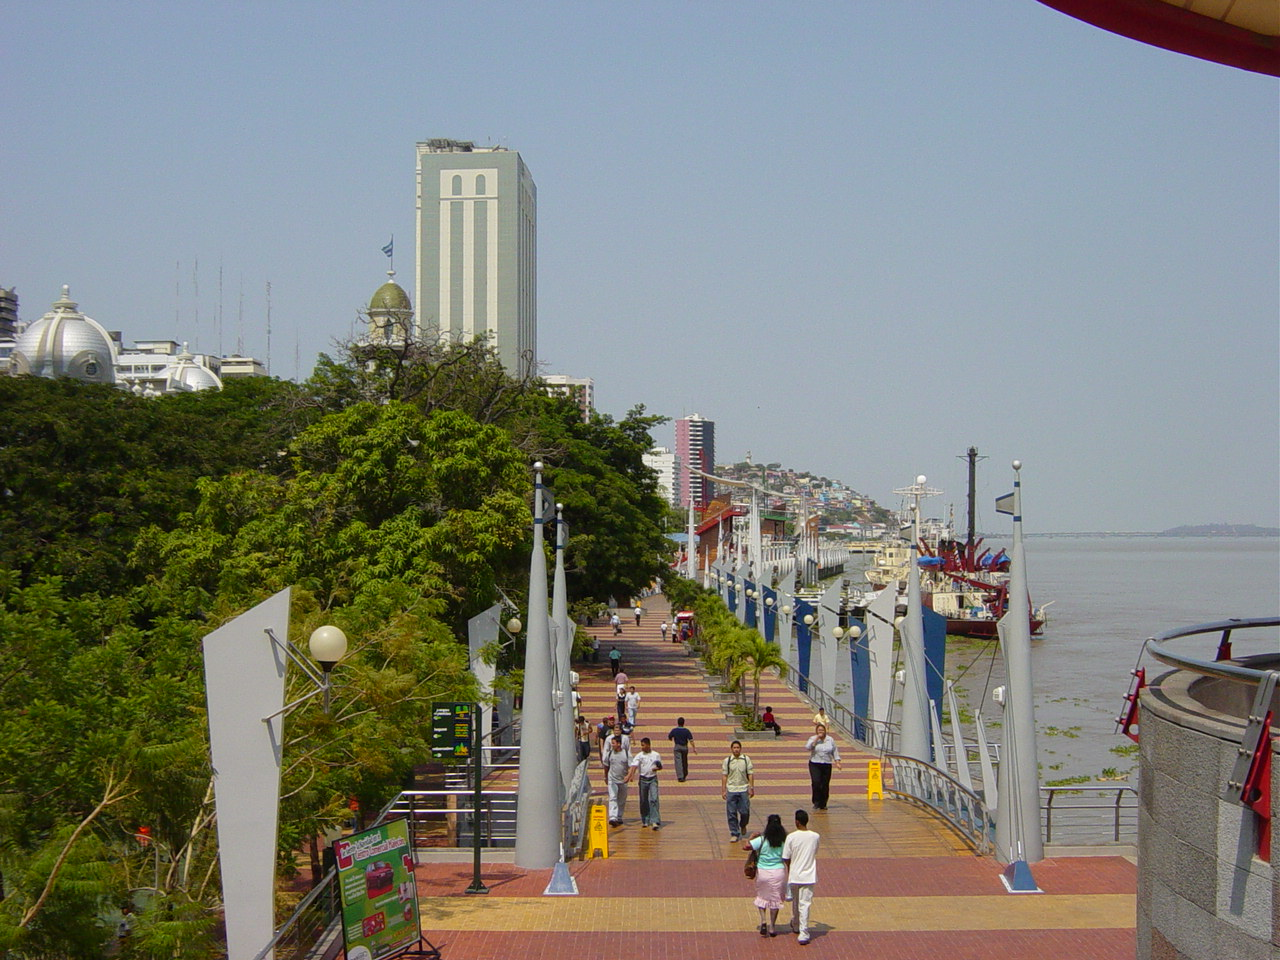 Guayaquil_Malecon2000